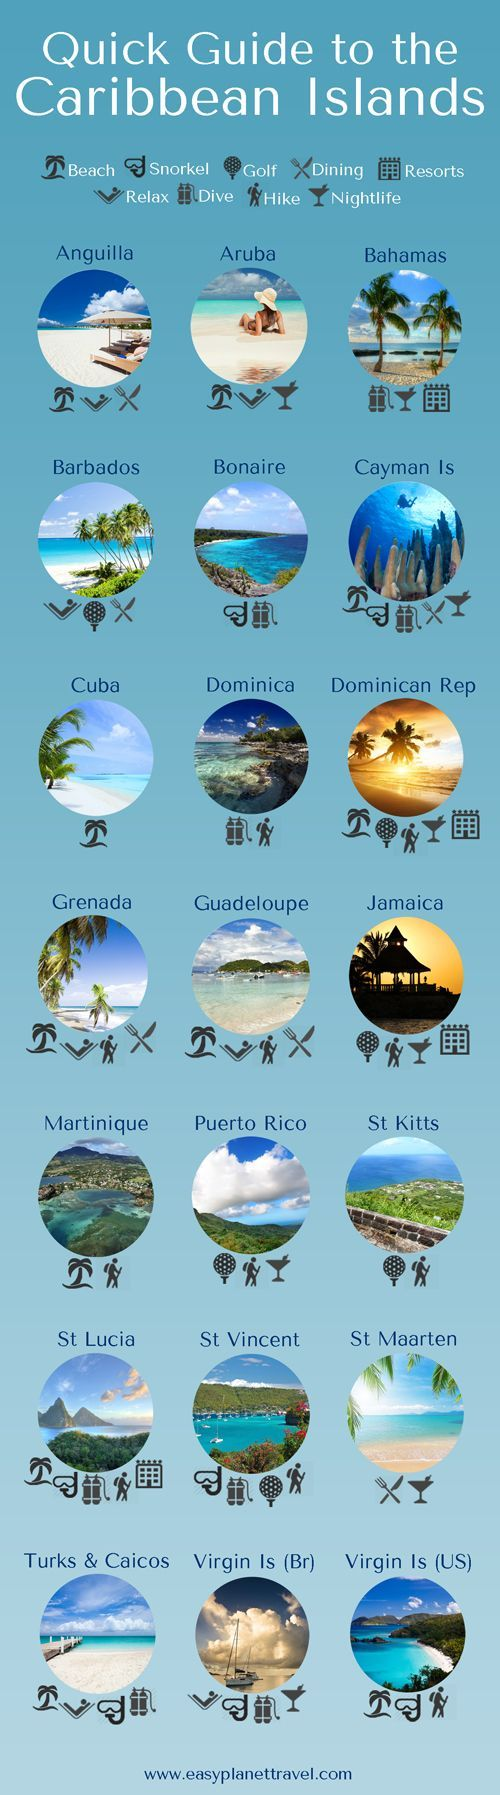 Quick Guide to the Caribbean Islands (infographic) www.easyplanettravel.com/quic...